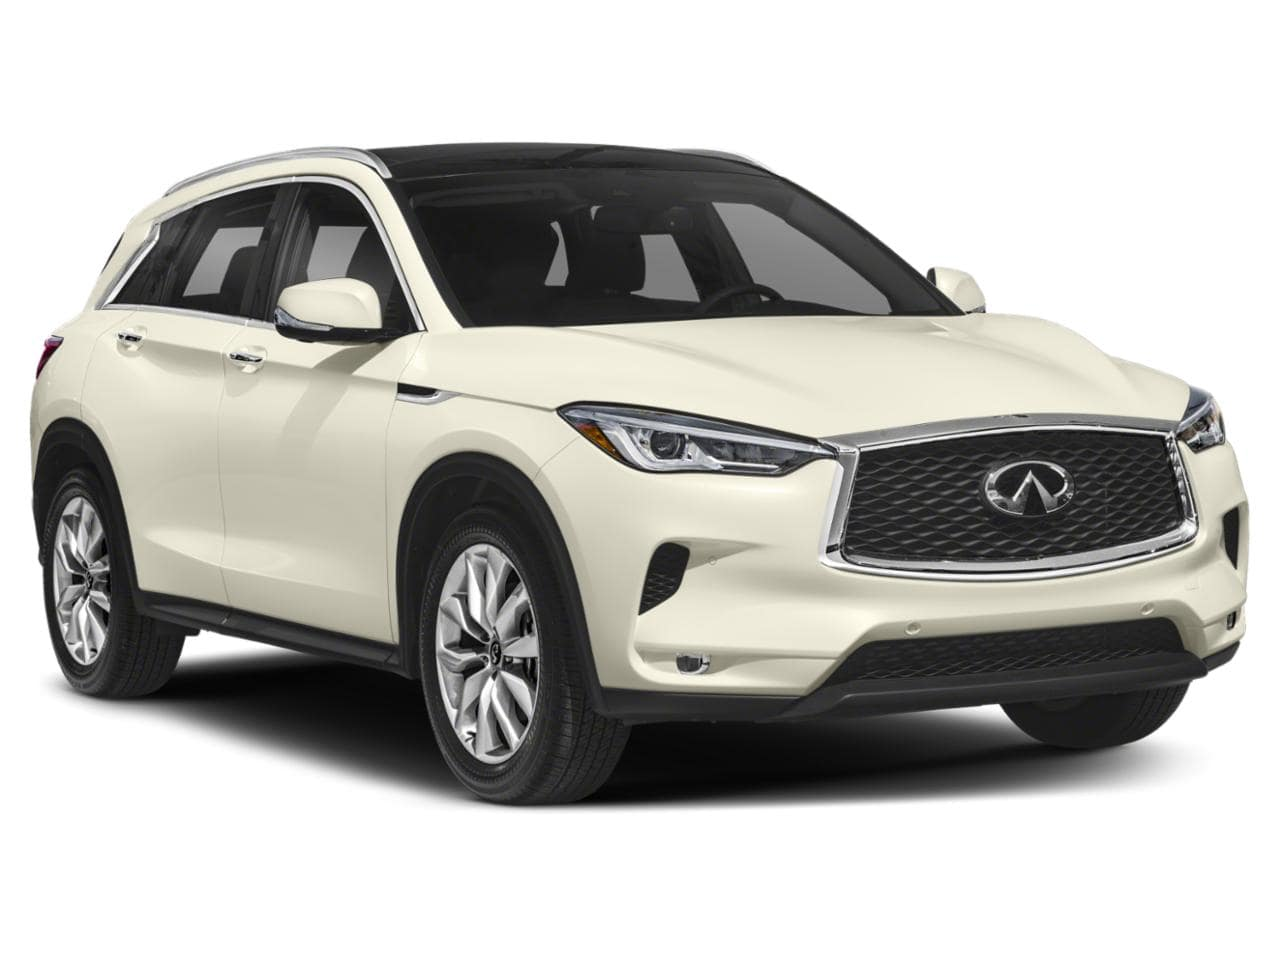 Herrin Gear Jackson Ms >> INFINITI QX50 Offers, Incentives,& Specials In Jackson, MS ...